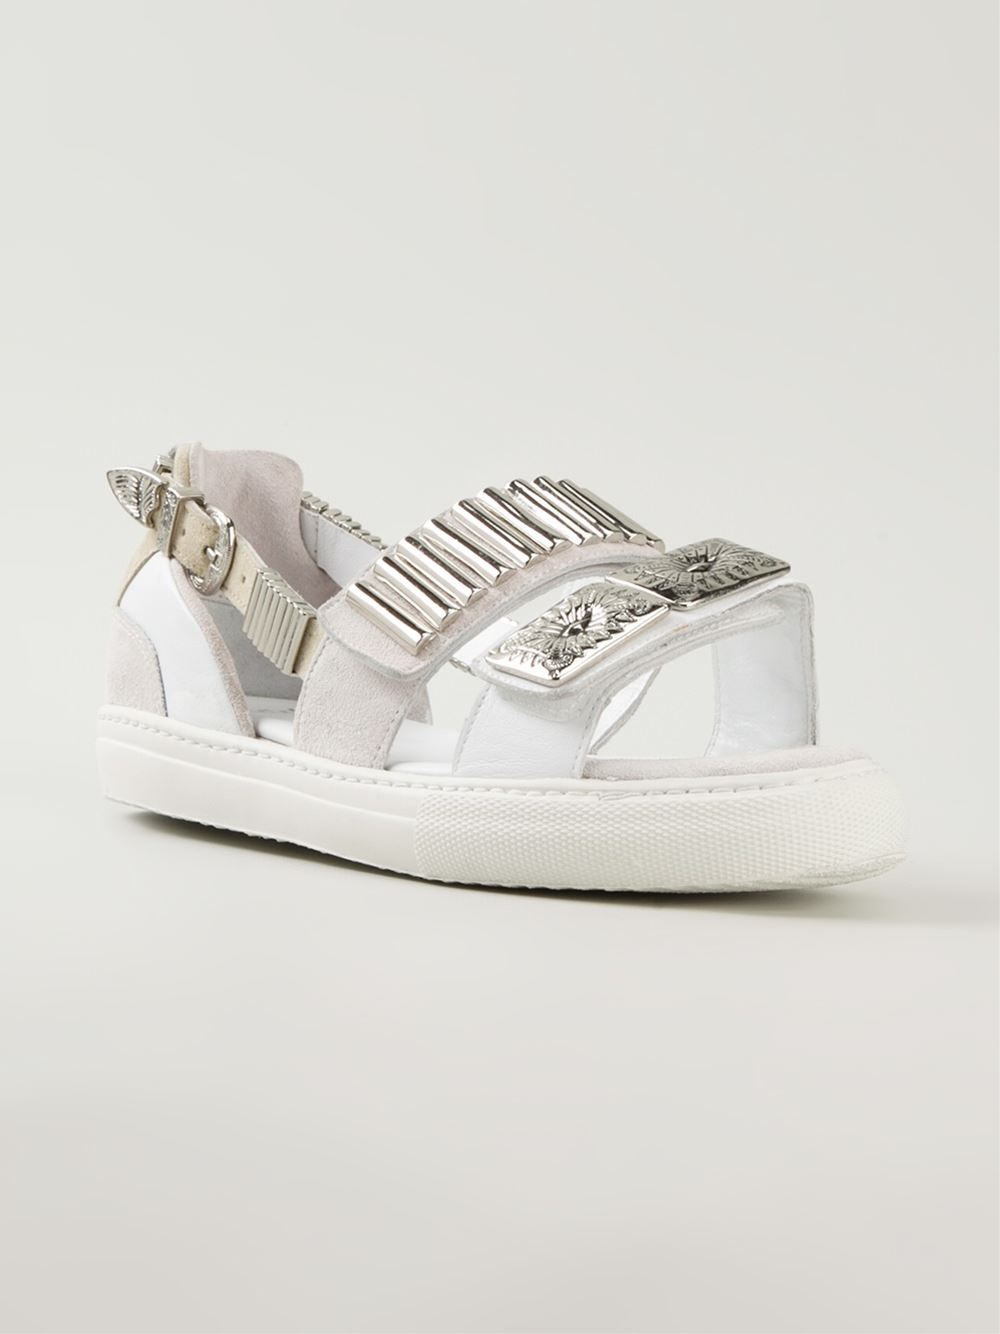 Toga Pulla Sneaker Style Sandals In White Lyst